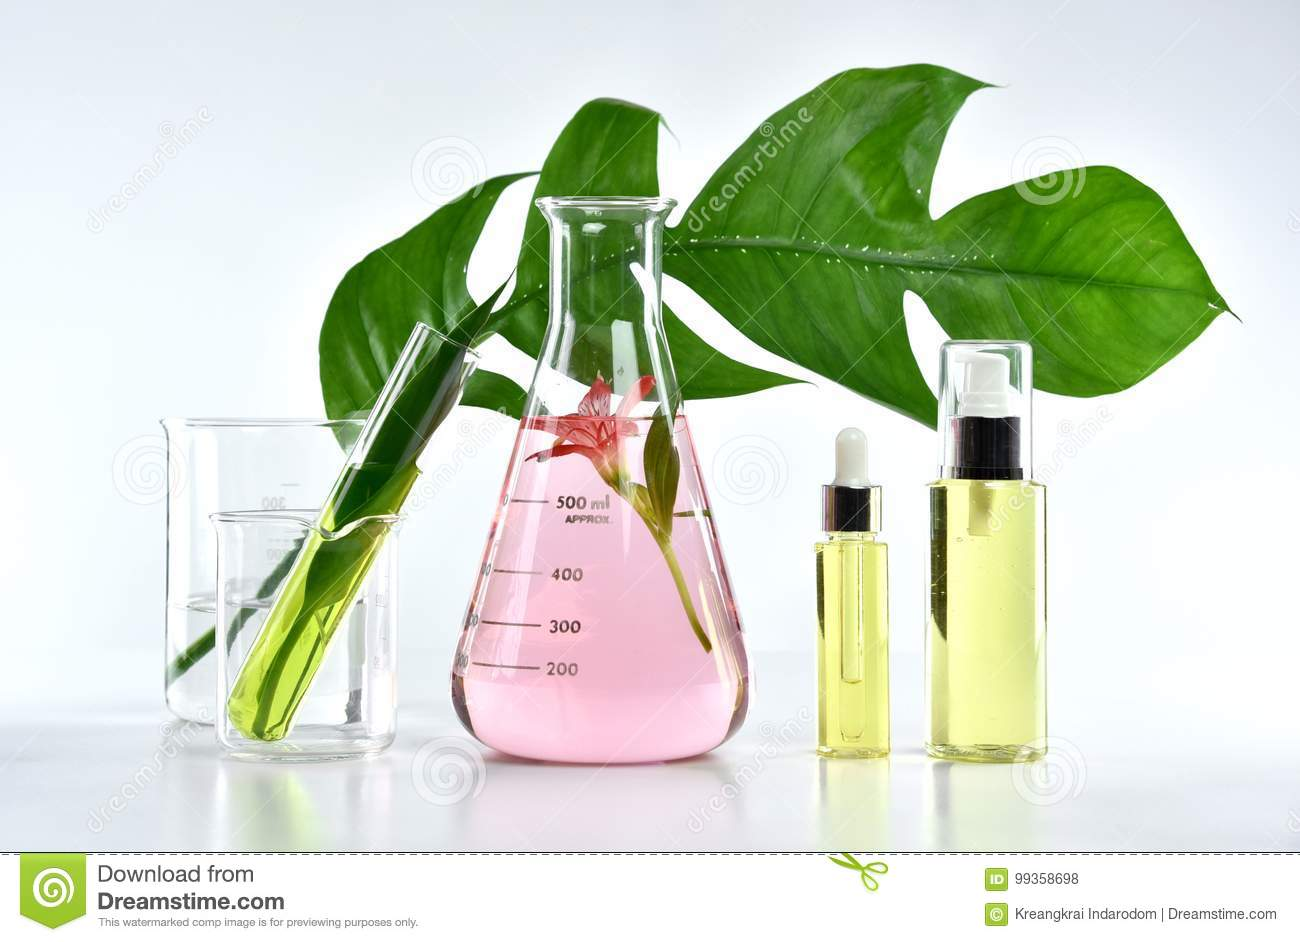 Natural skin care beauty products, Natural organic botany extraction and scientific glassware